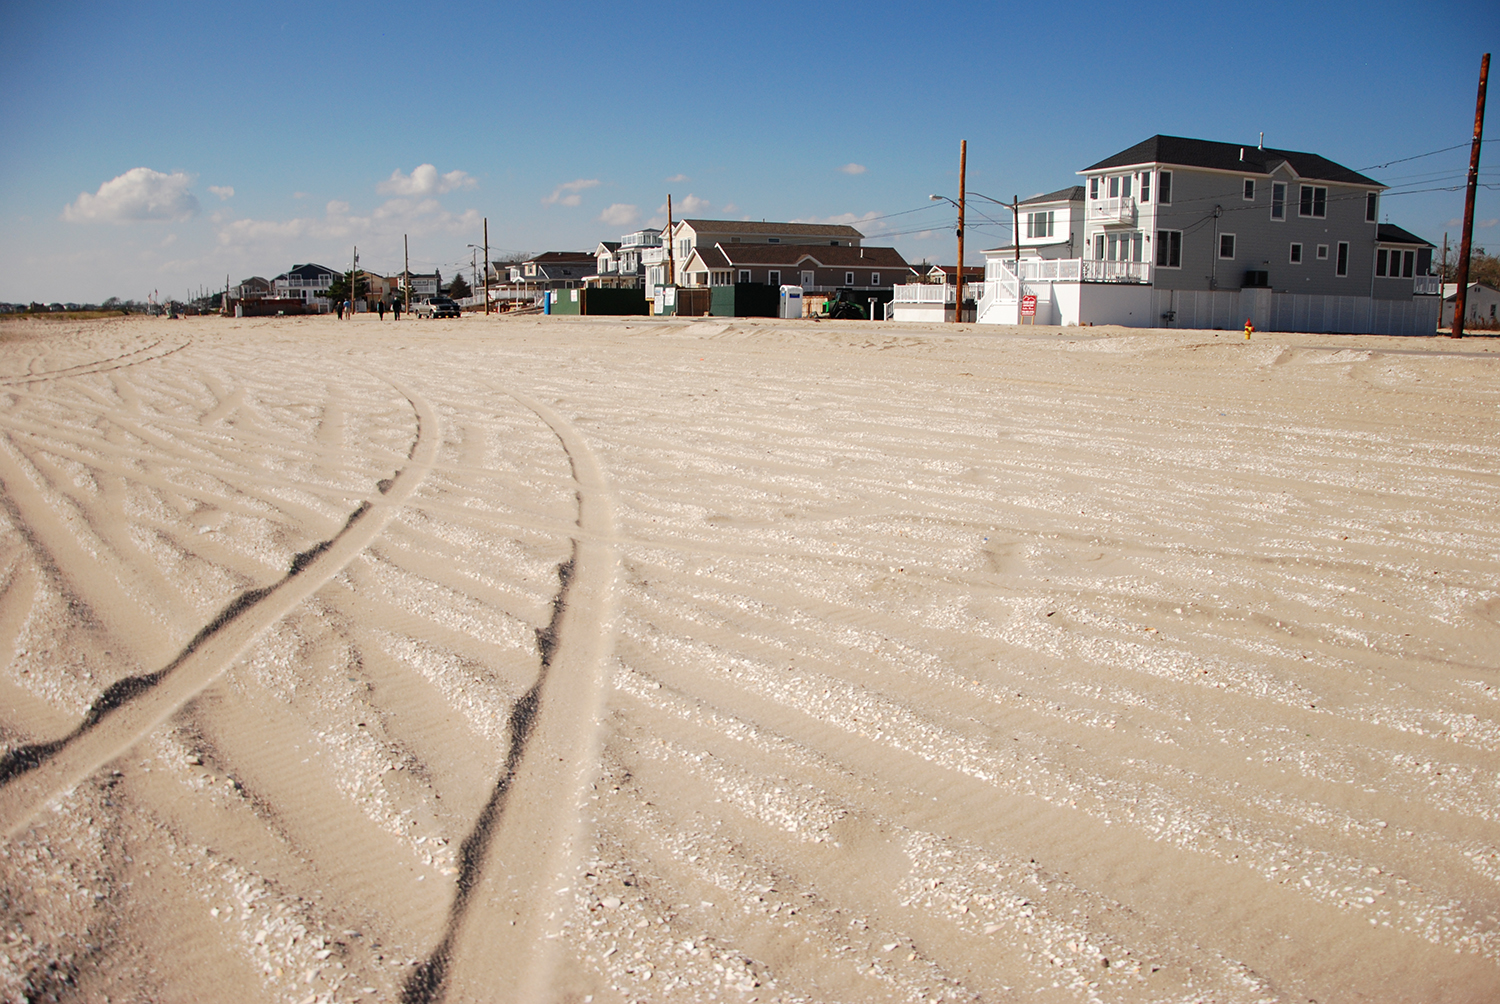 visiting  of new york citys hidden beaches   curbed ny down in the rockaways another private gated community controls almost the entire western end of the peninsula the vast beaches of breezy point are part of